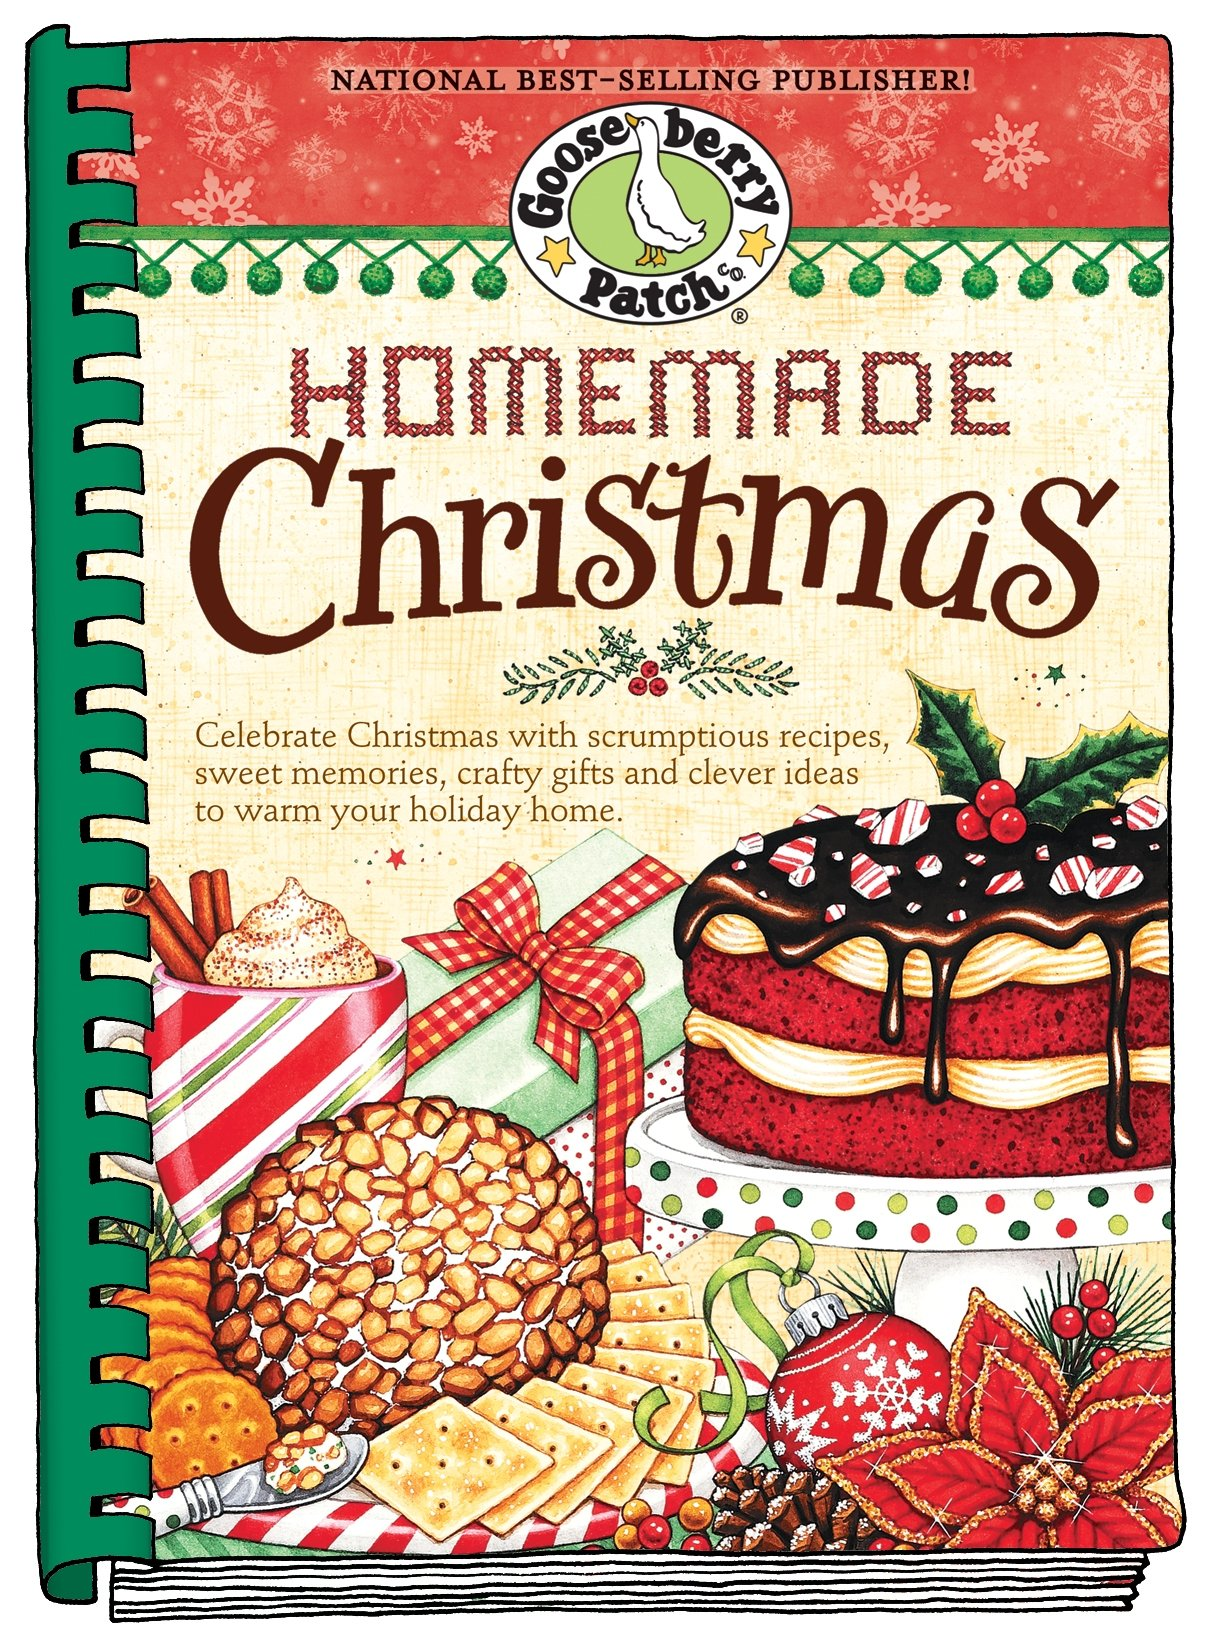 Homemade Christmas: Tried & true recipes, heartwarming memories and easy ideas for savoring the best of Christmas. (Seasonal Cookbook Collection) PDF